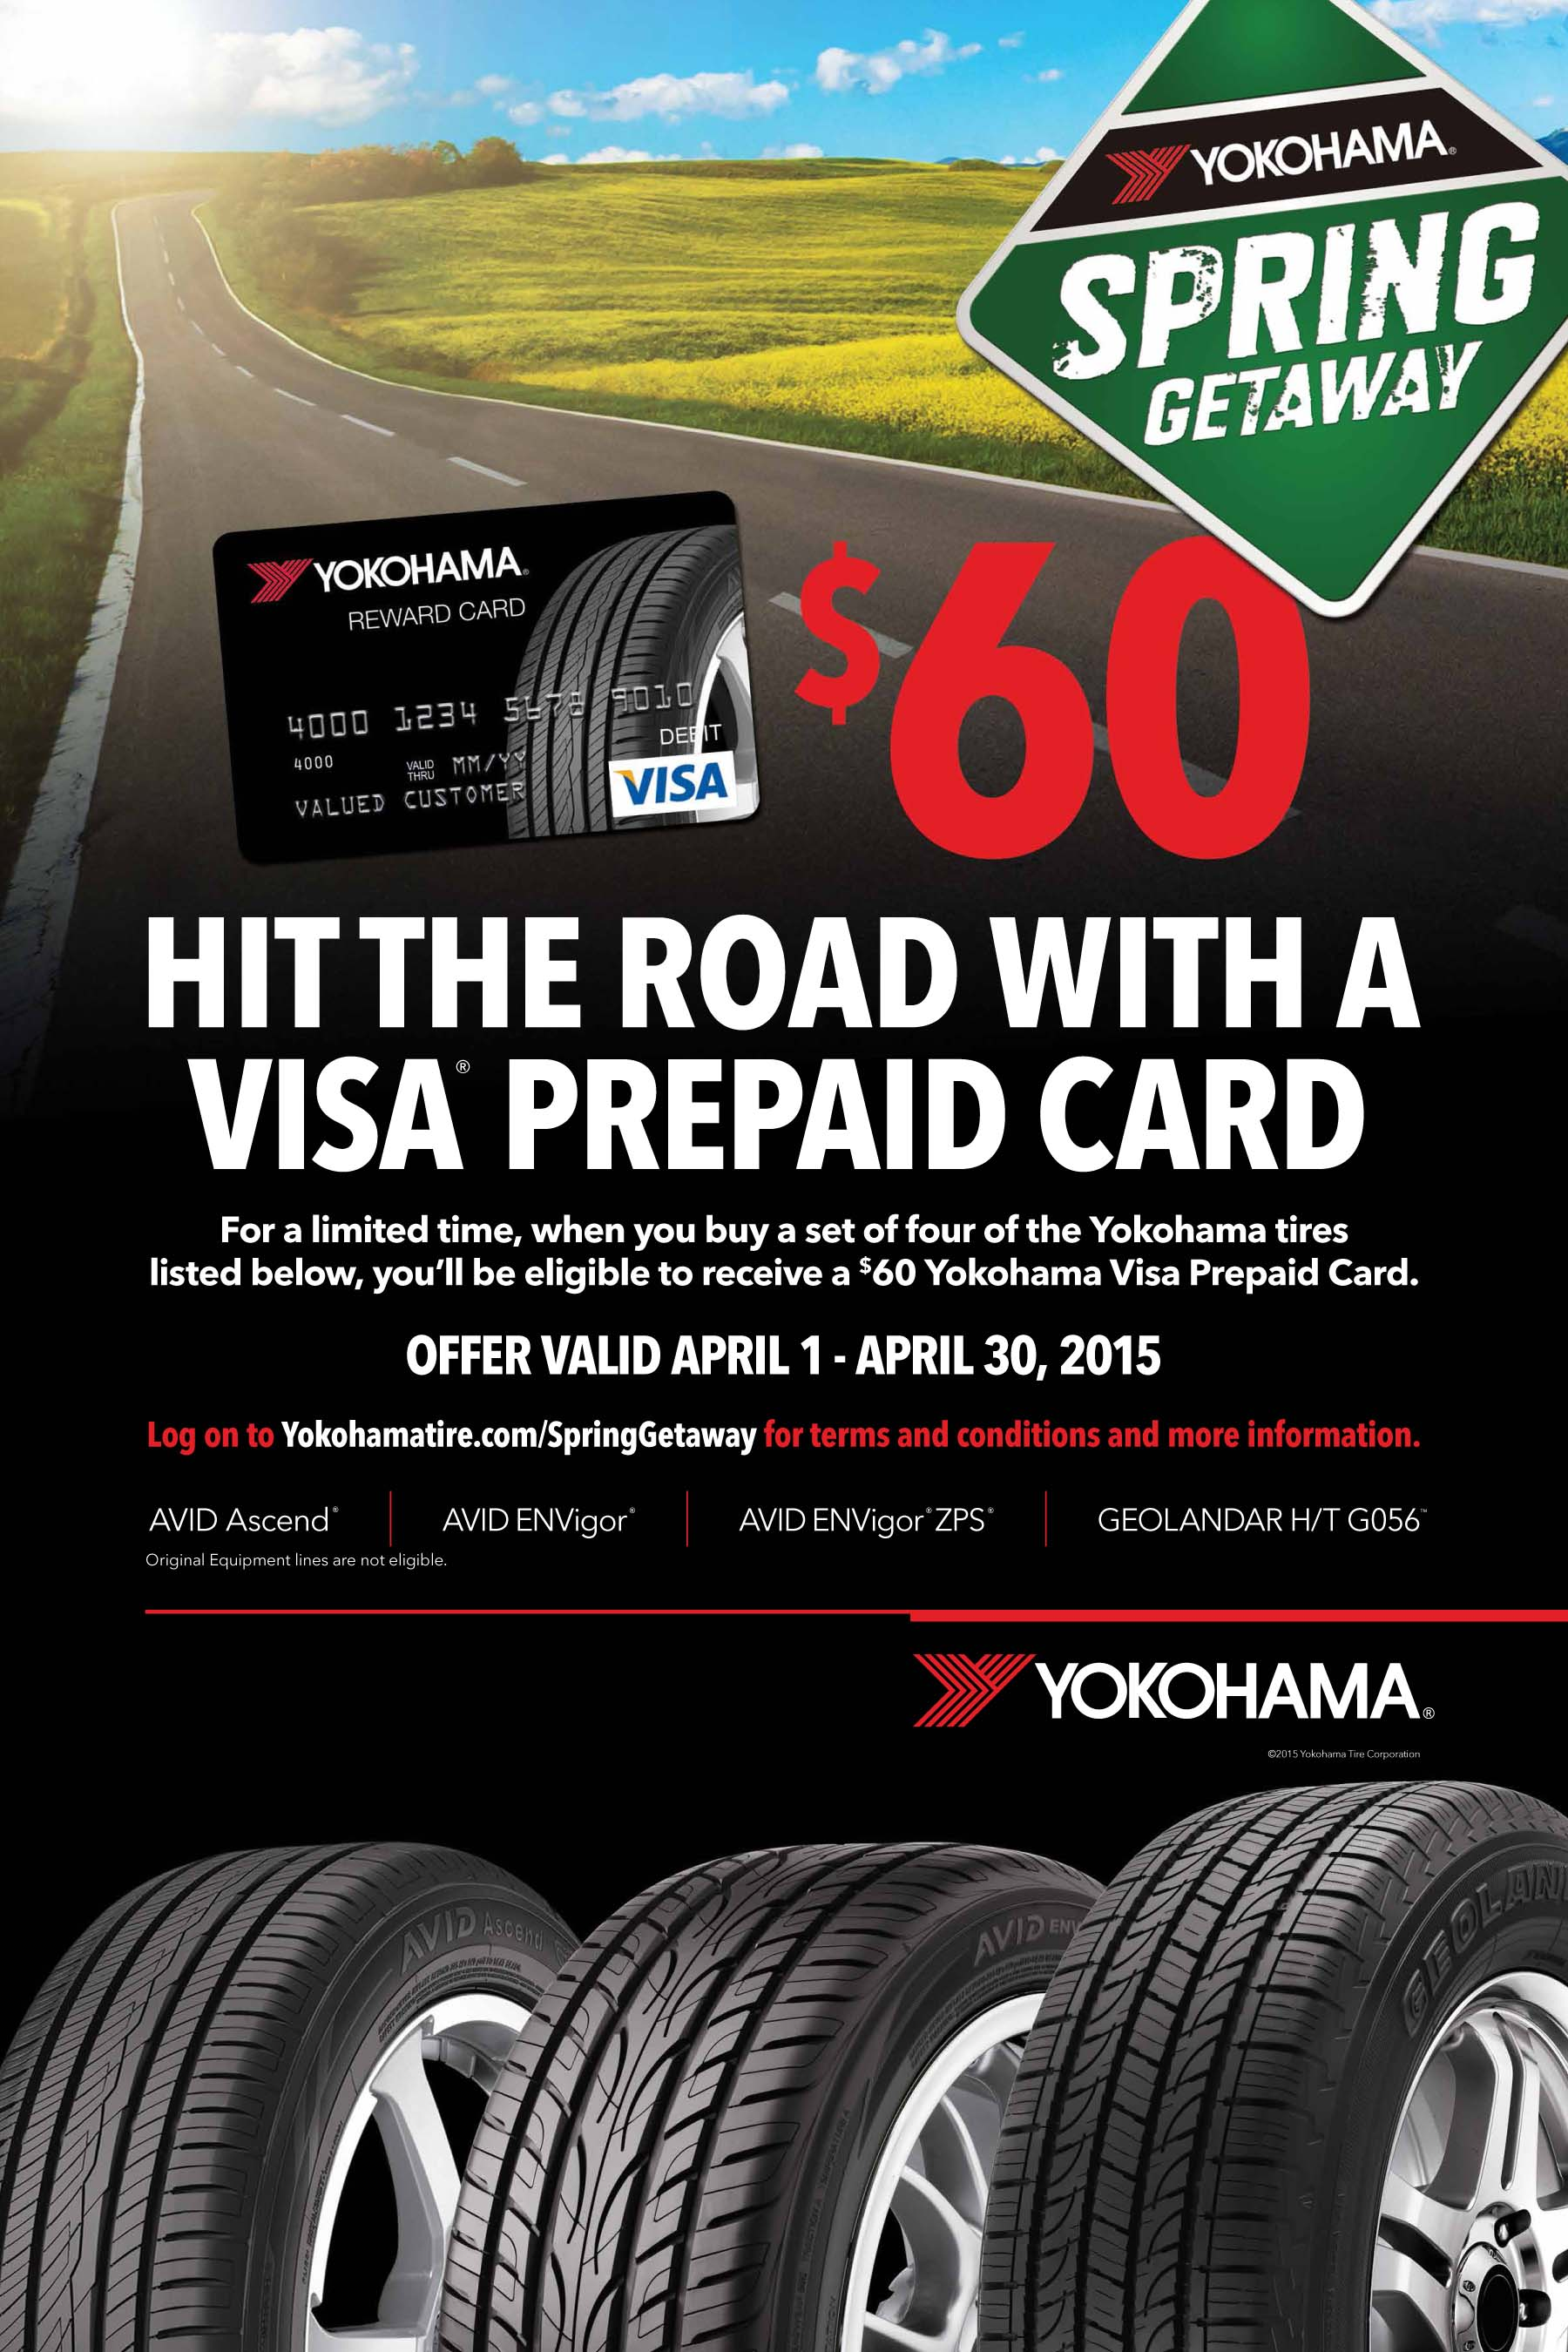 Yokohama Tire Brings Back 'Spring Getaway' Promotion